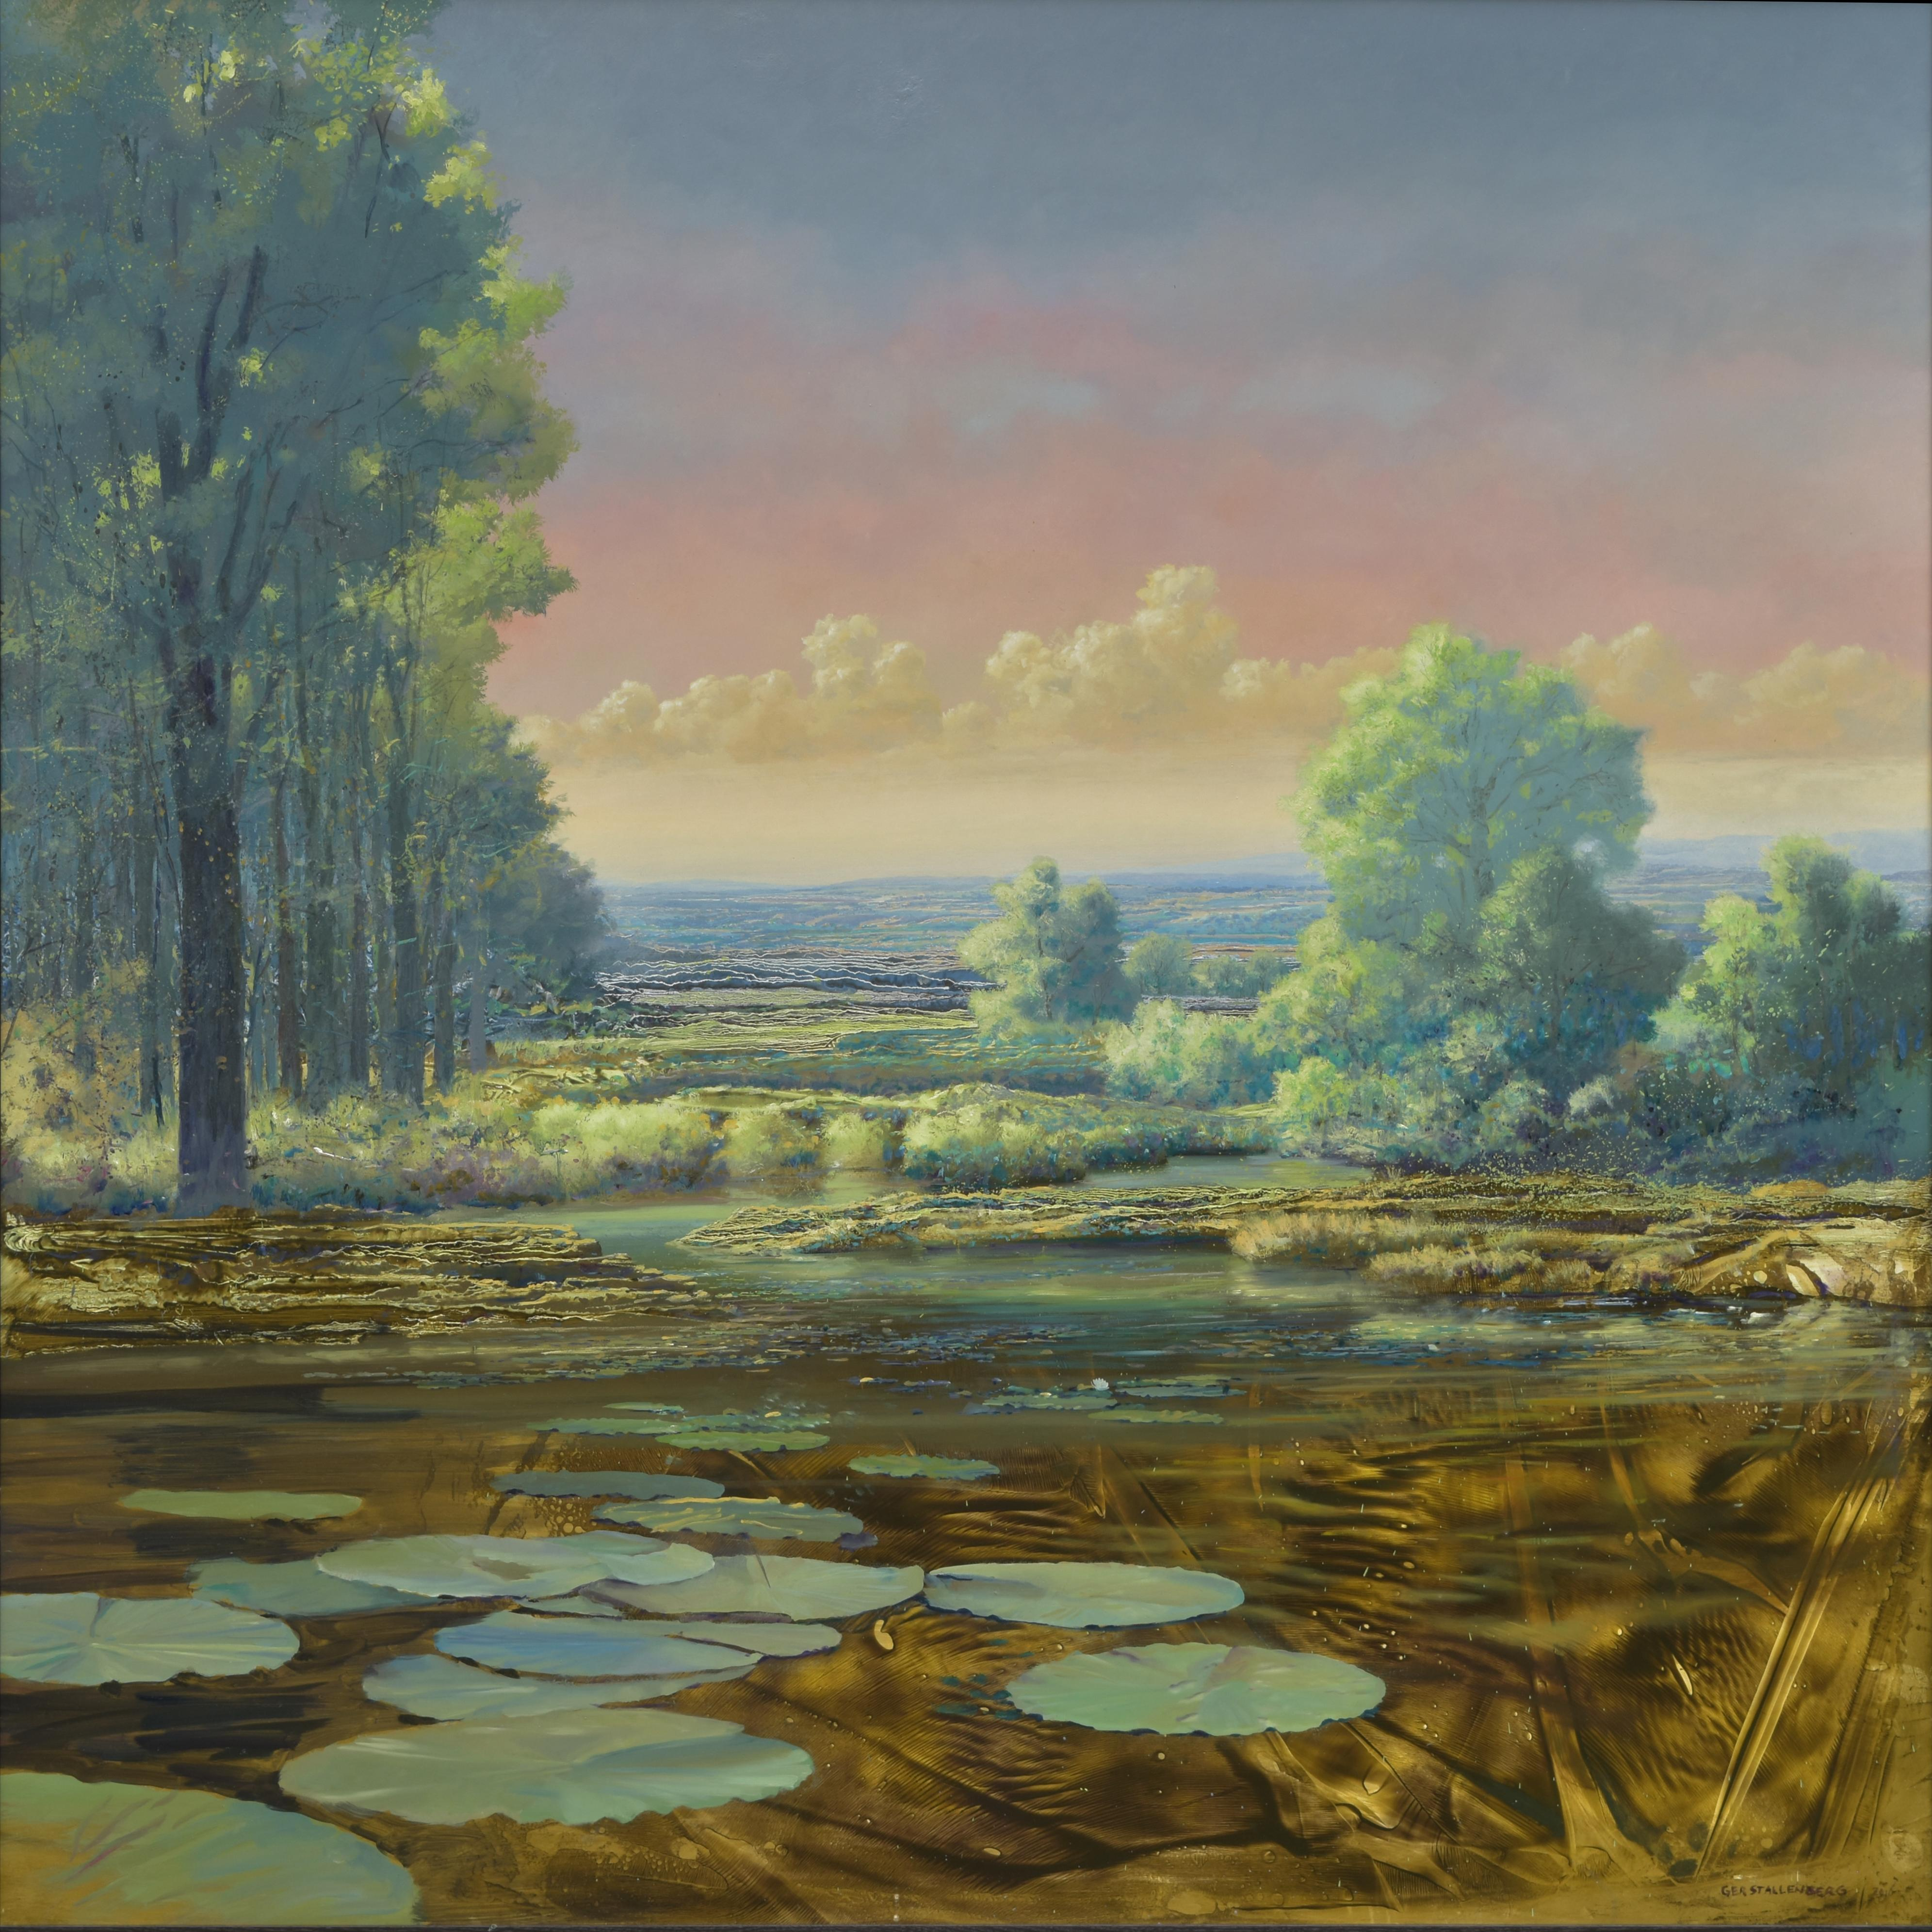 From here to Eternity - 21st Century Contemporary Colorful Landscape Painting